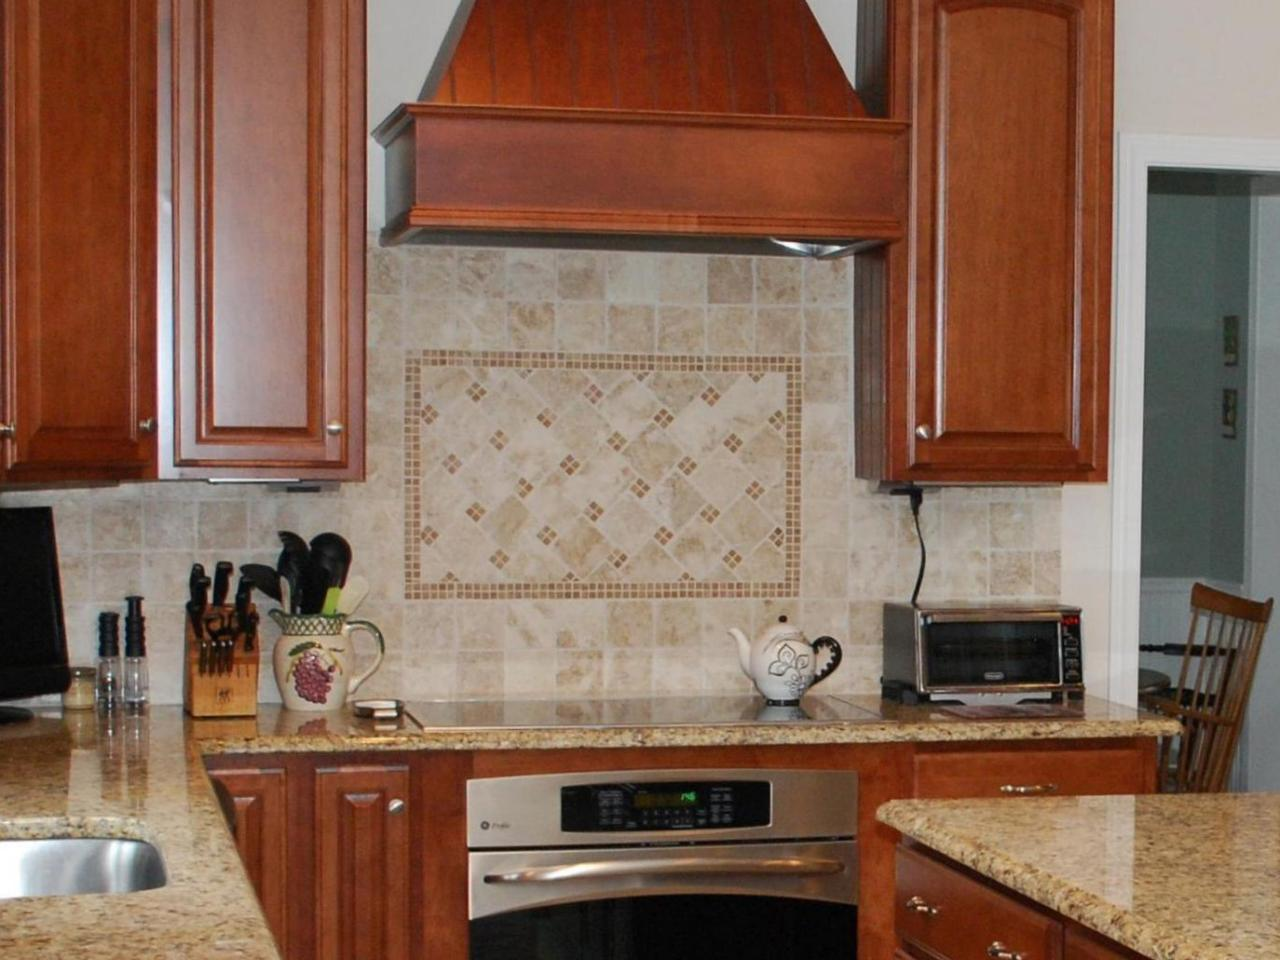 tumbled marble backsplash - Backsplash Design Ideas